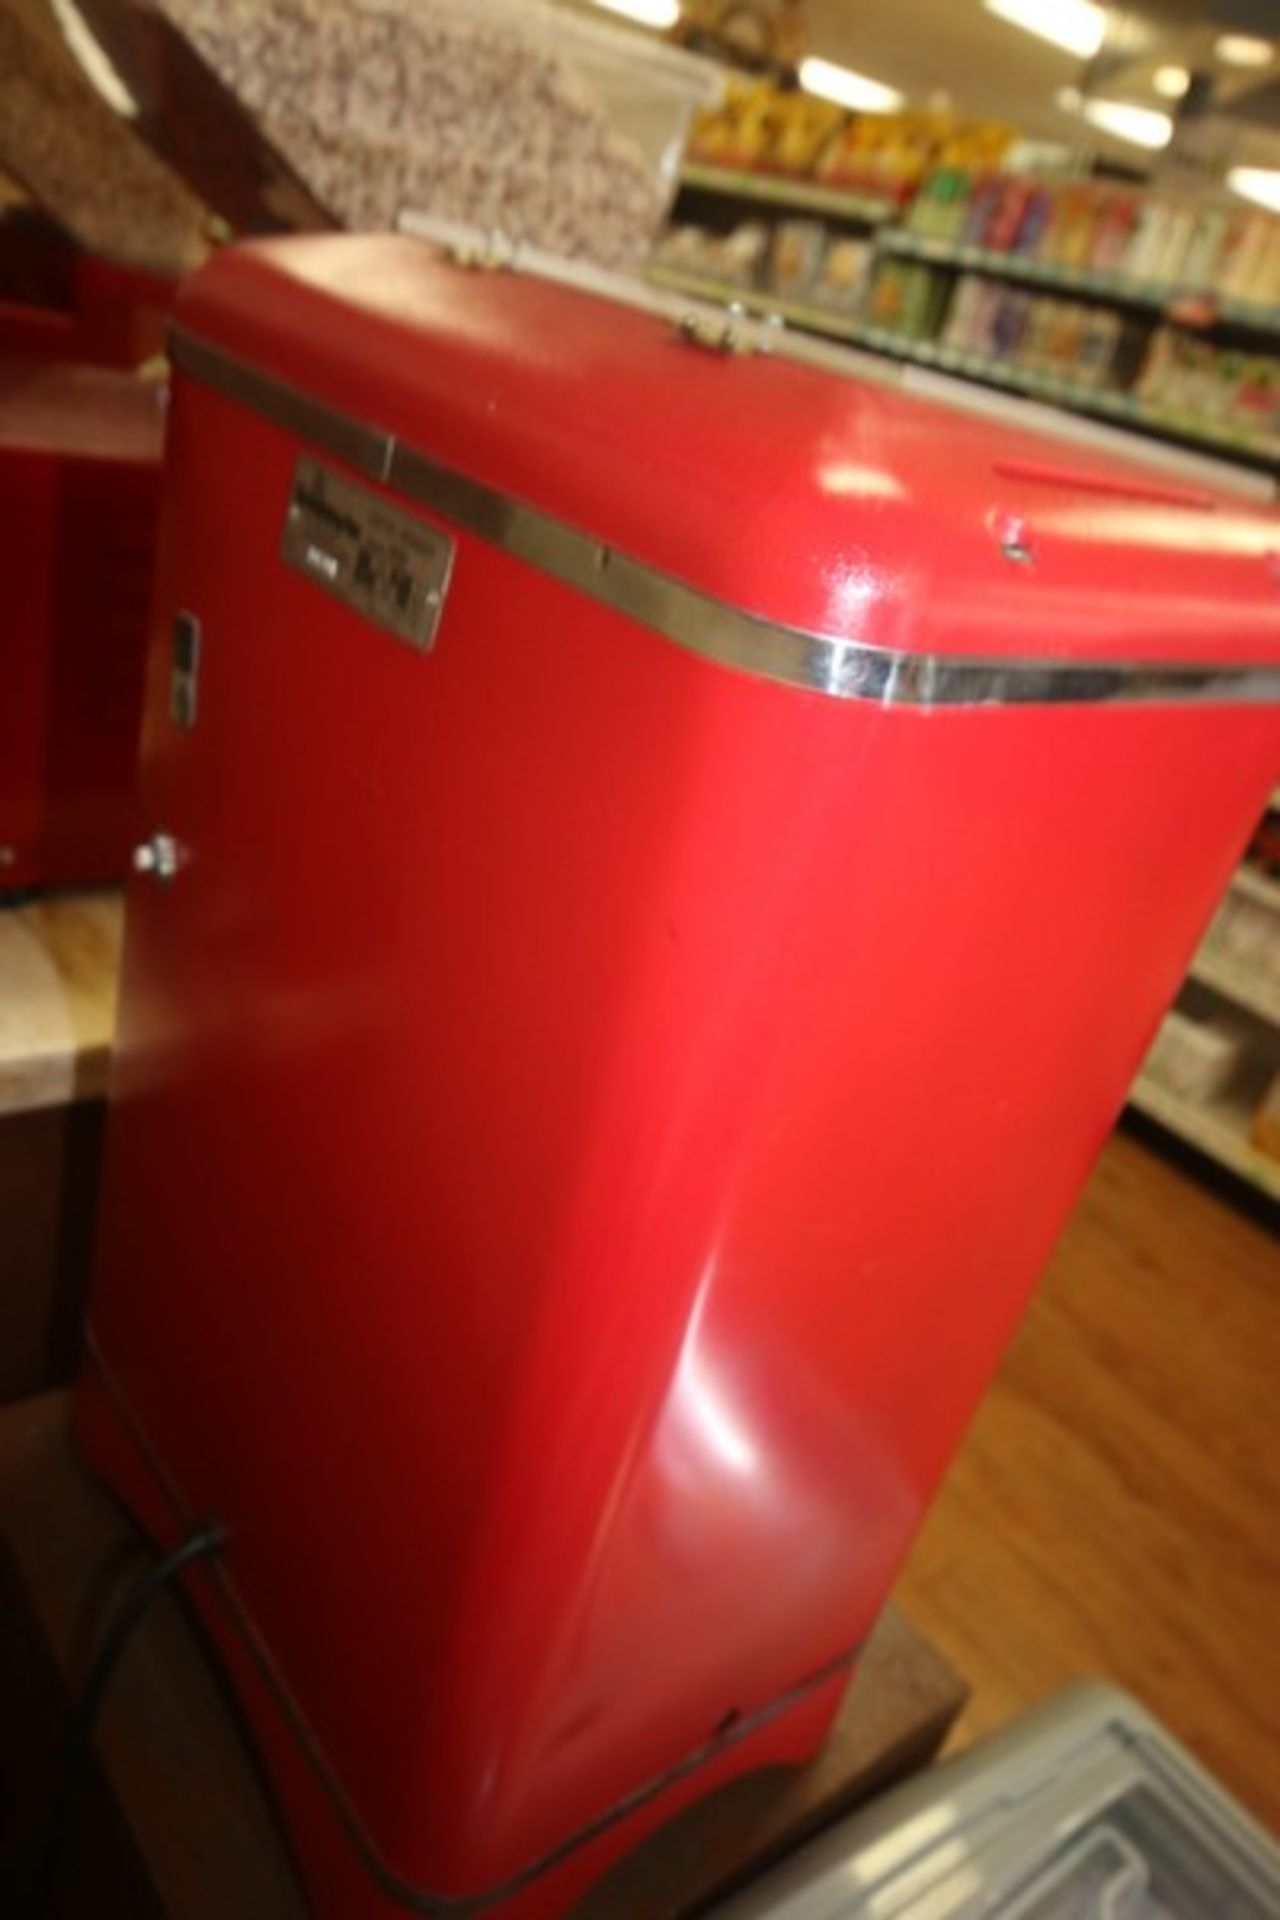 Grindmaster Coffee Grinder, M/N 500, S/N 33334, 115 Volts, with 1/3 hp Motor (Located in McMurray, - Image 3 of 4